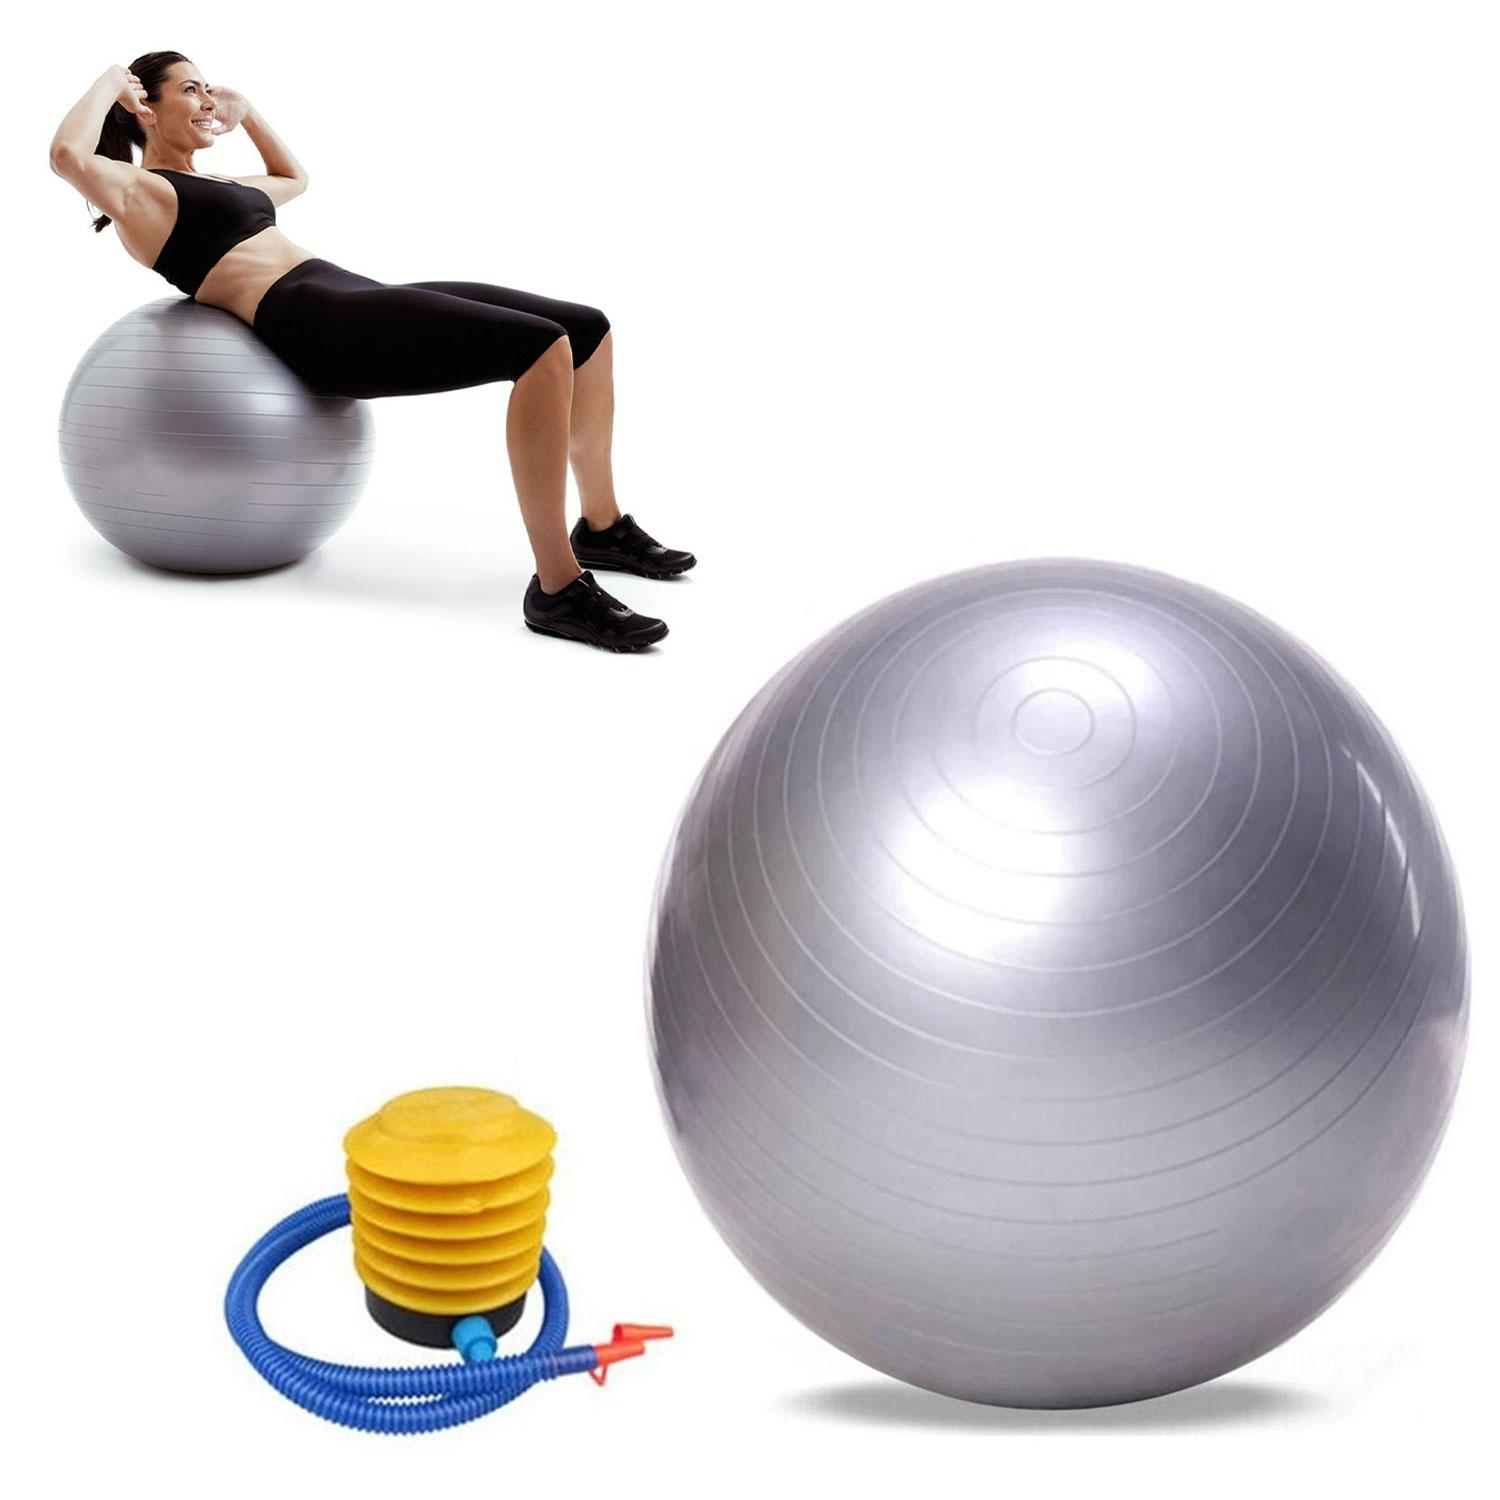 Exercise Balls for sale - Fitness Balls online brands 7a0c844b0f34